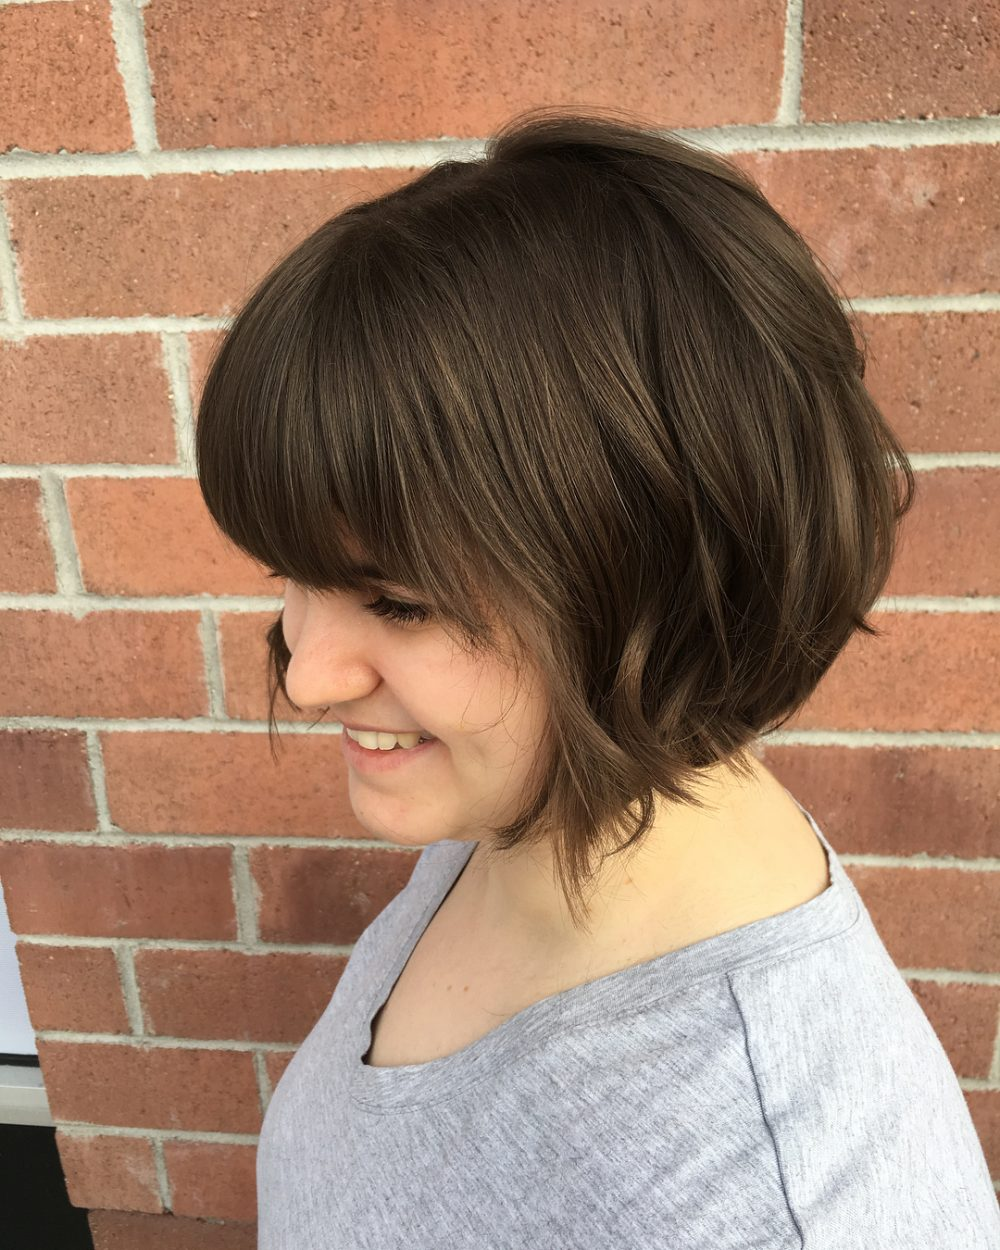 Short Hair Teen Homemade